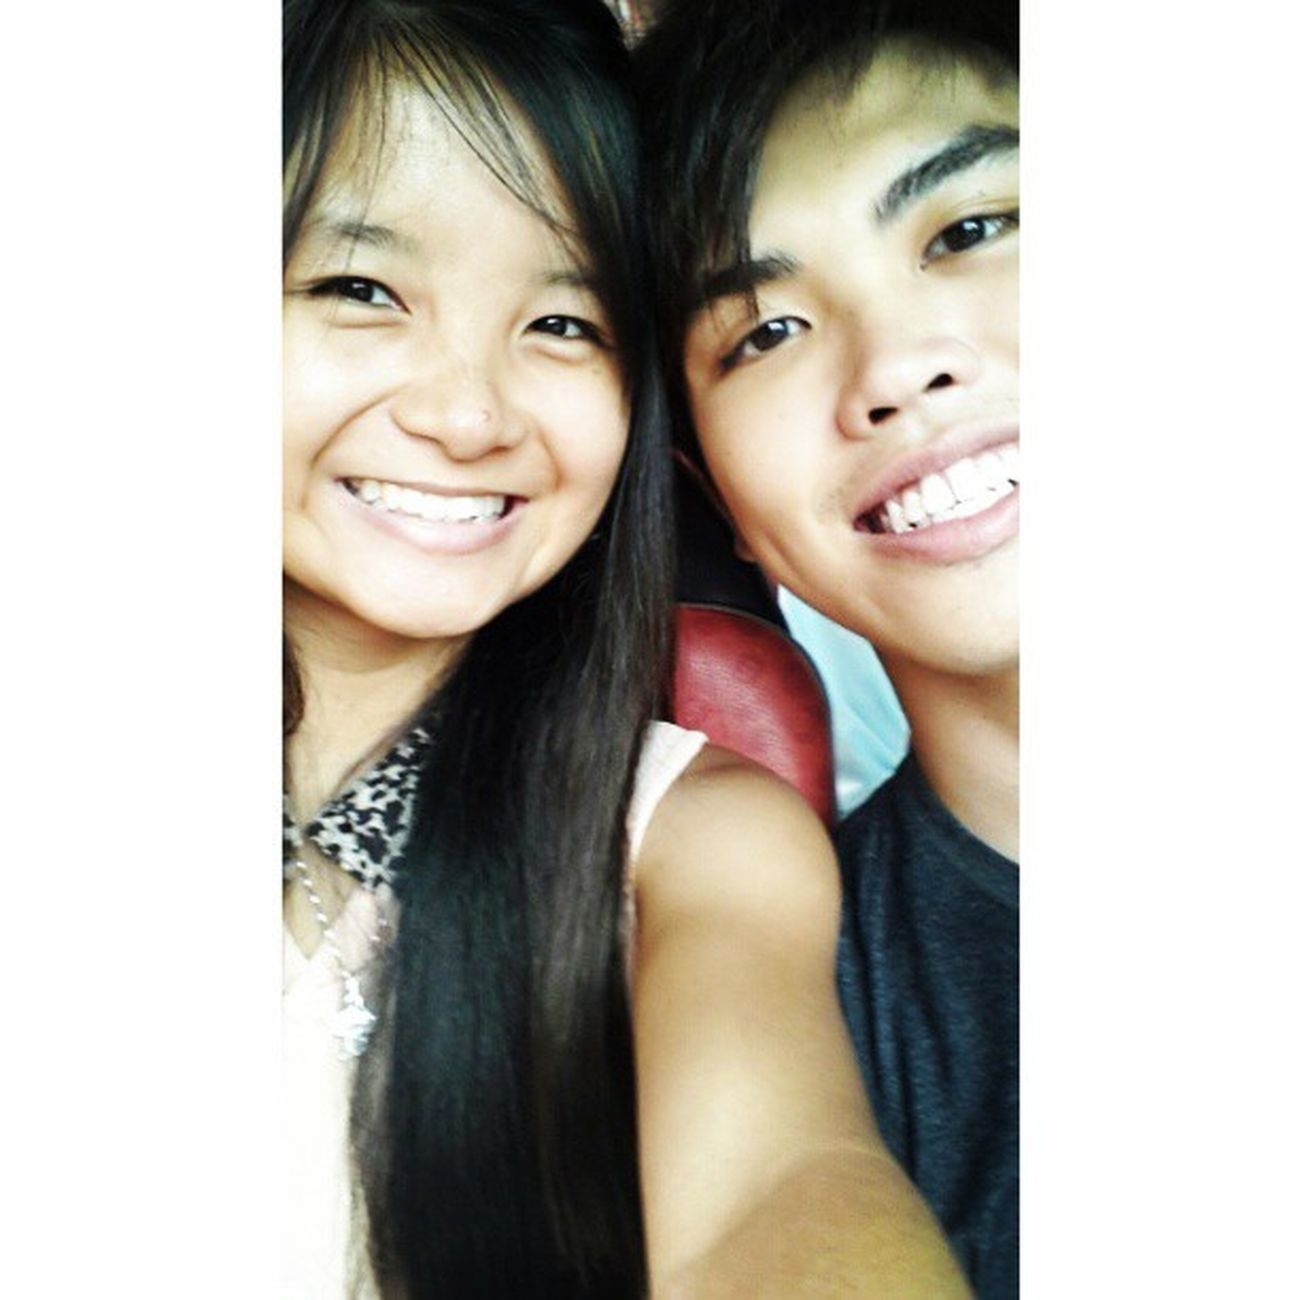 With @jyangsaw Ps: He say this effect makes his teeth look whiter so is nicer LOL. Whiteteeth Loves Friday Inbus tgif